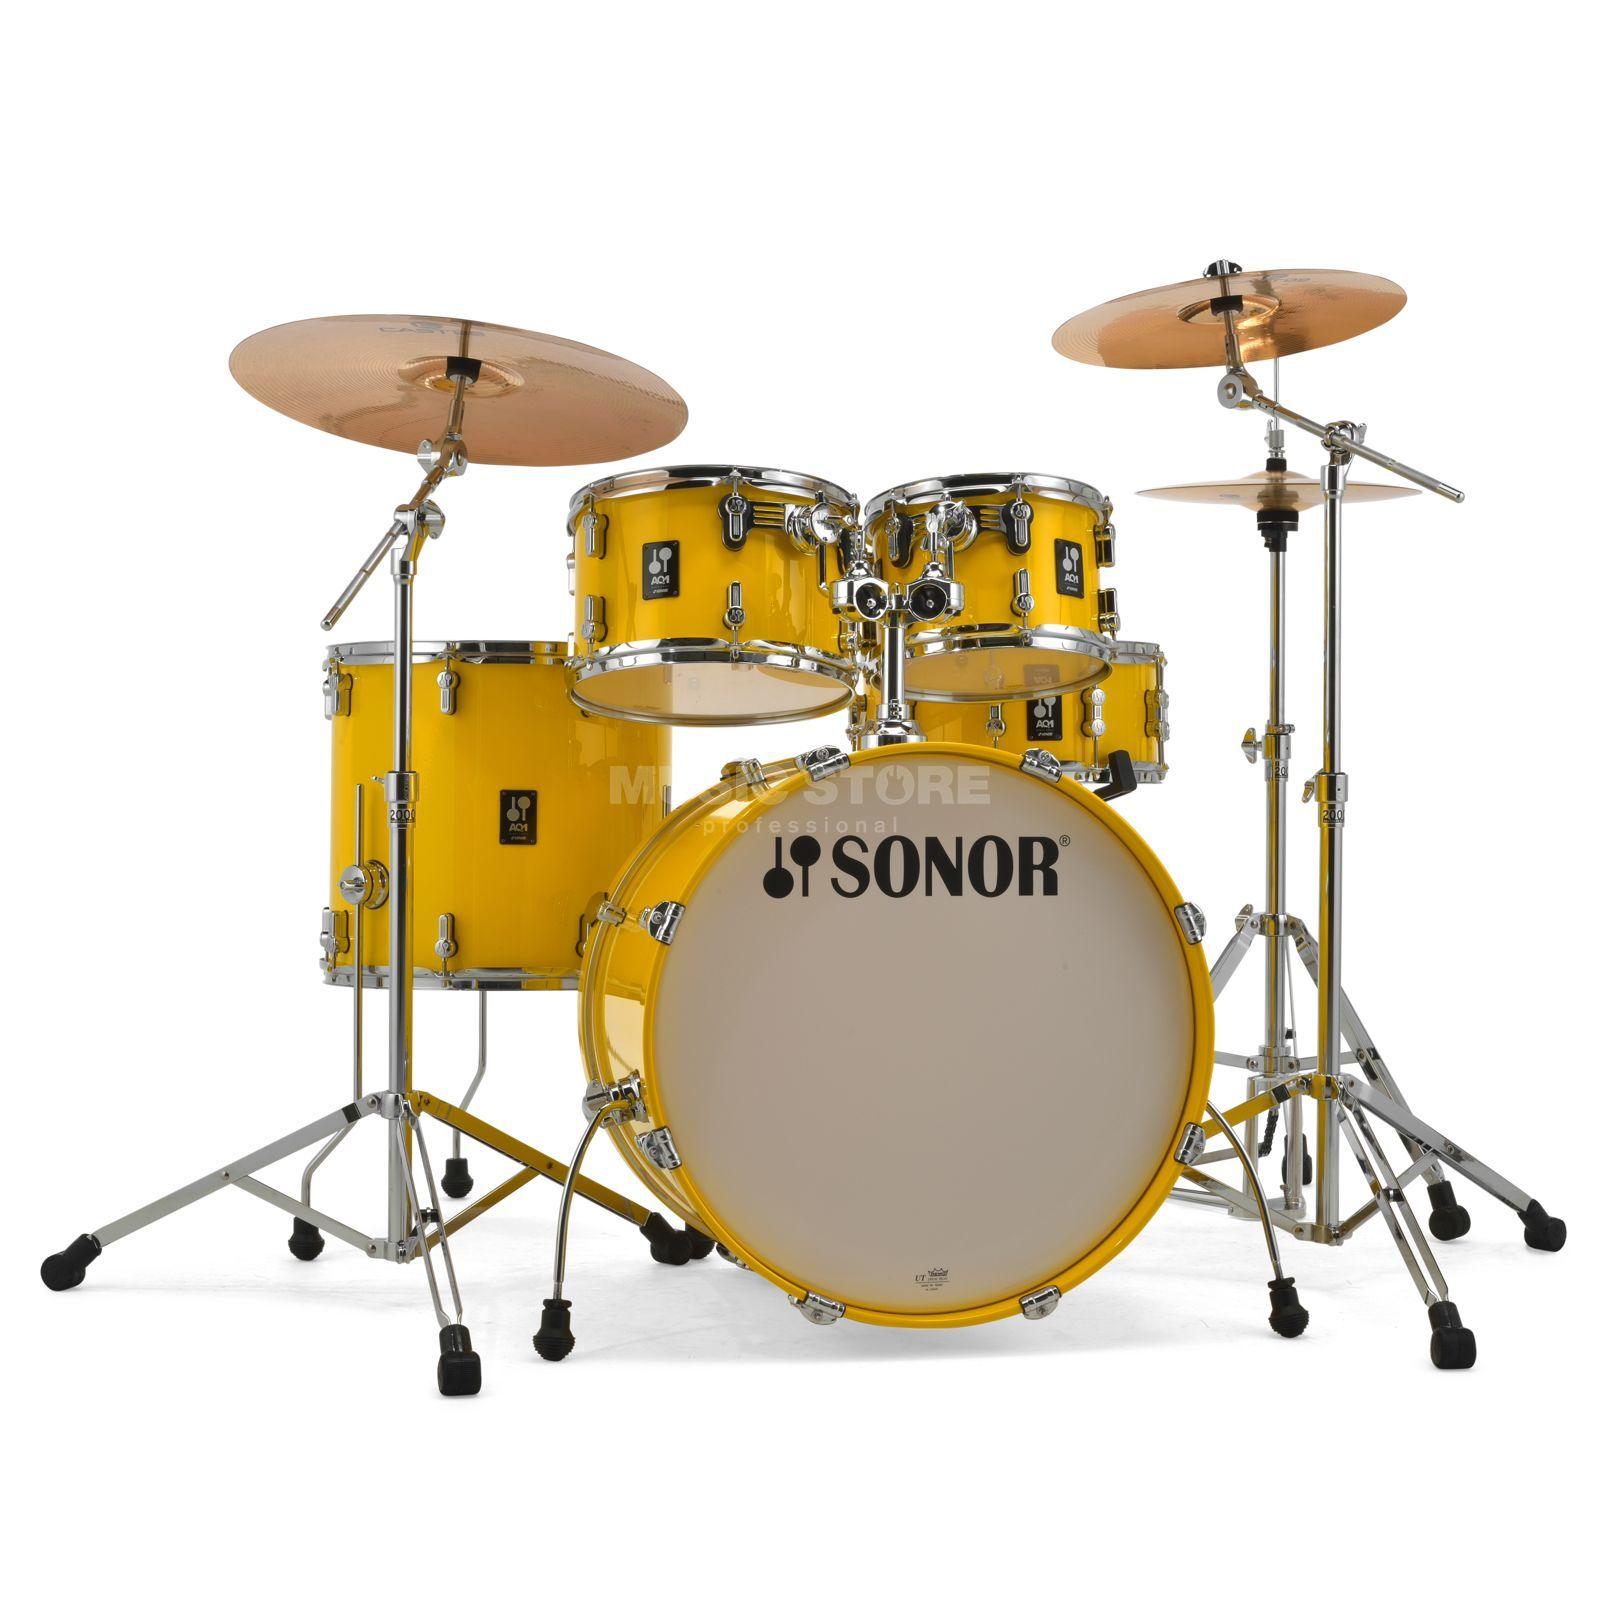 Sonor AQ1 Stage Set YW Yellow Product Image